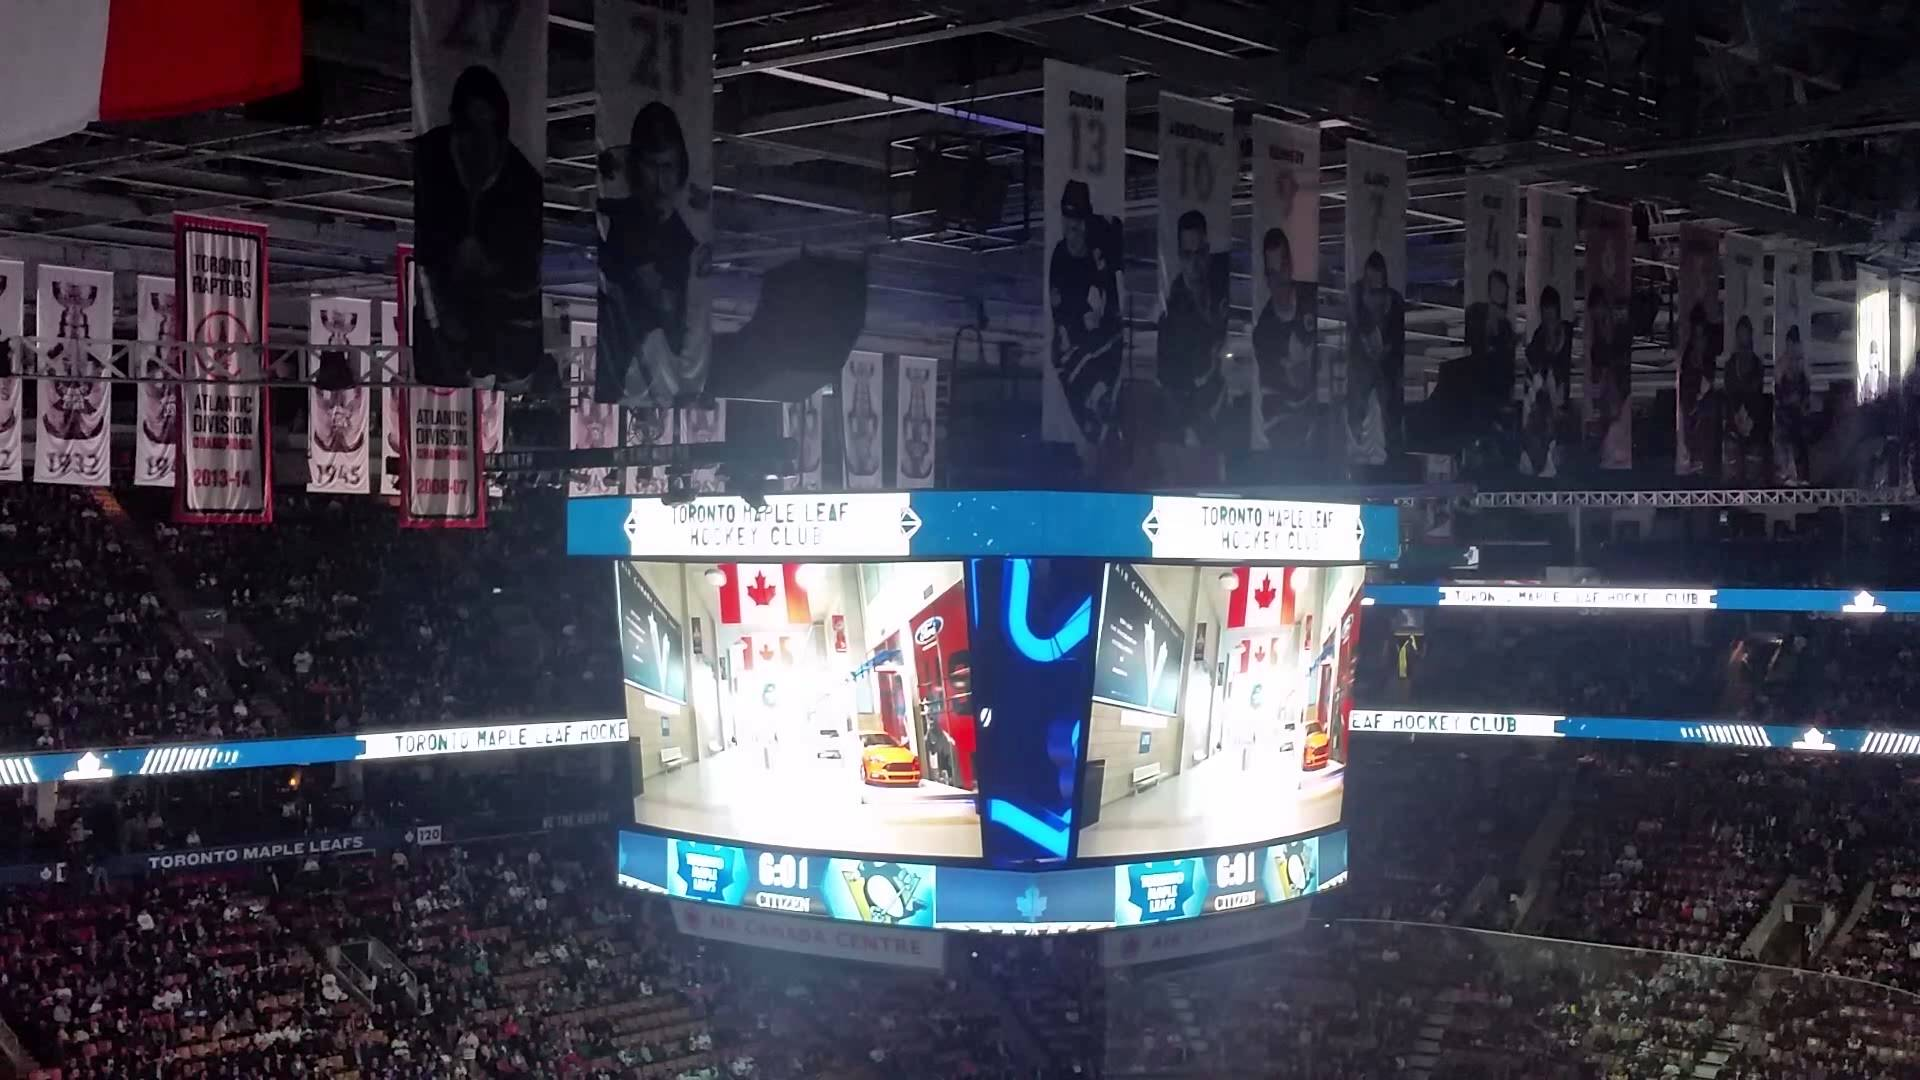 Toronto Maple Leafs light show 2015